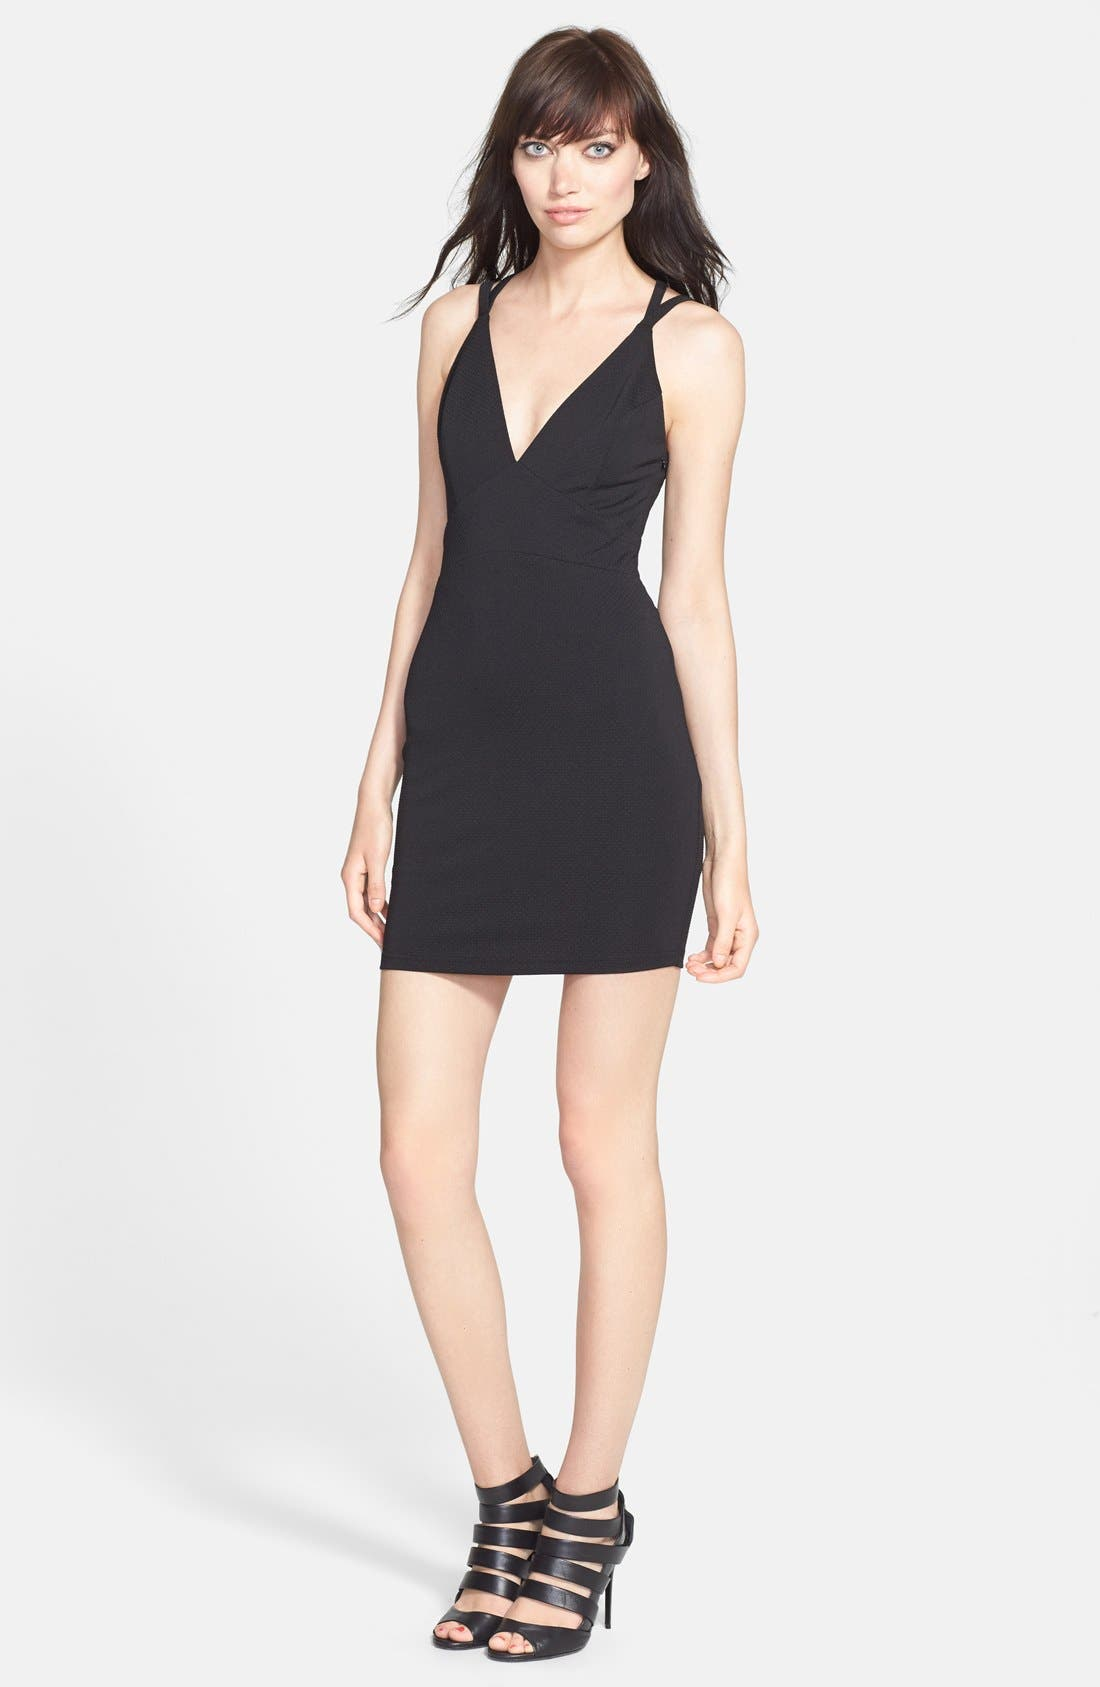 Alternate Image 1 Selected - ASTR Textured Body-Con Dress